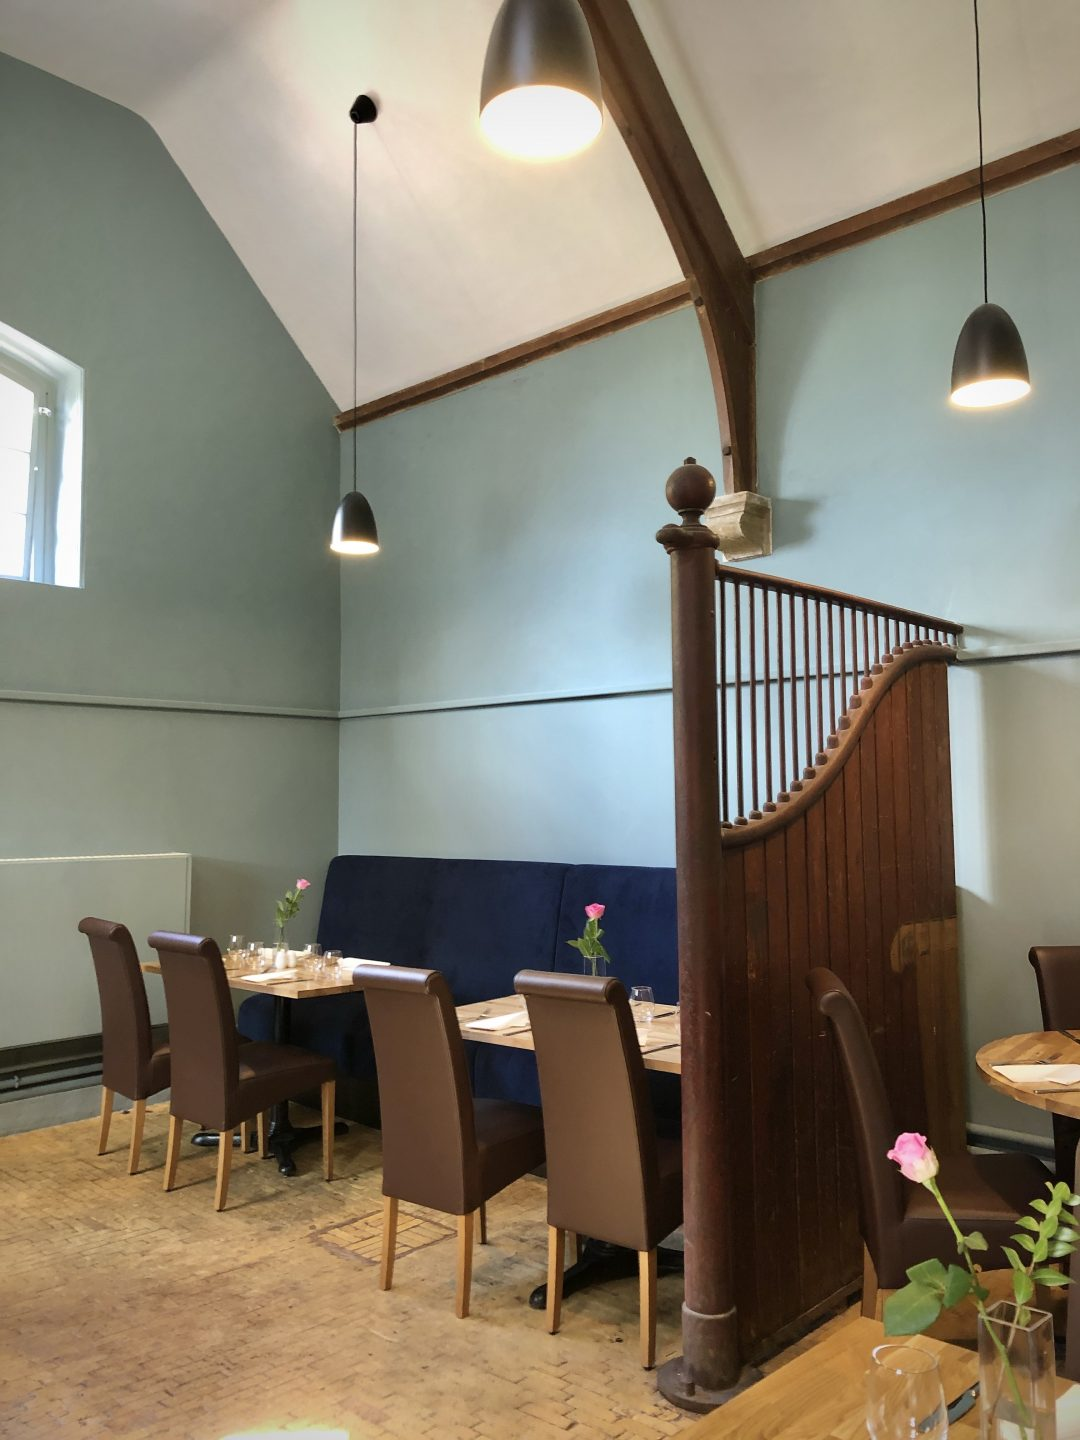 Stables Restaurant, the Lutyens Room at Hestercombe Gardens